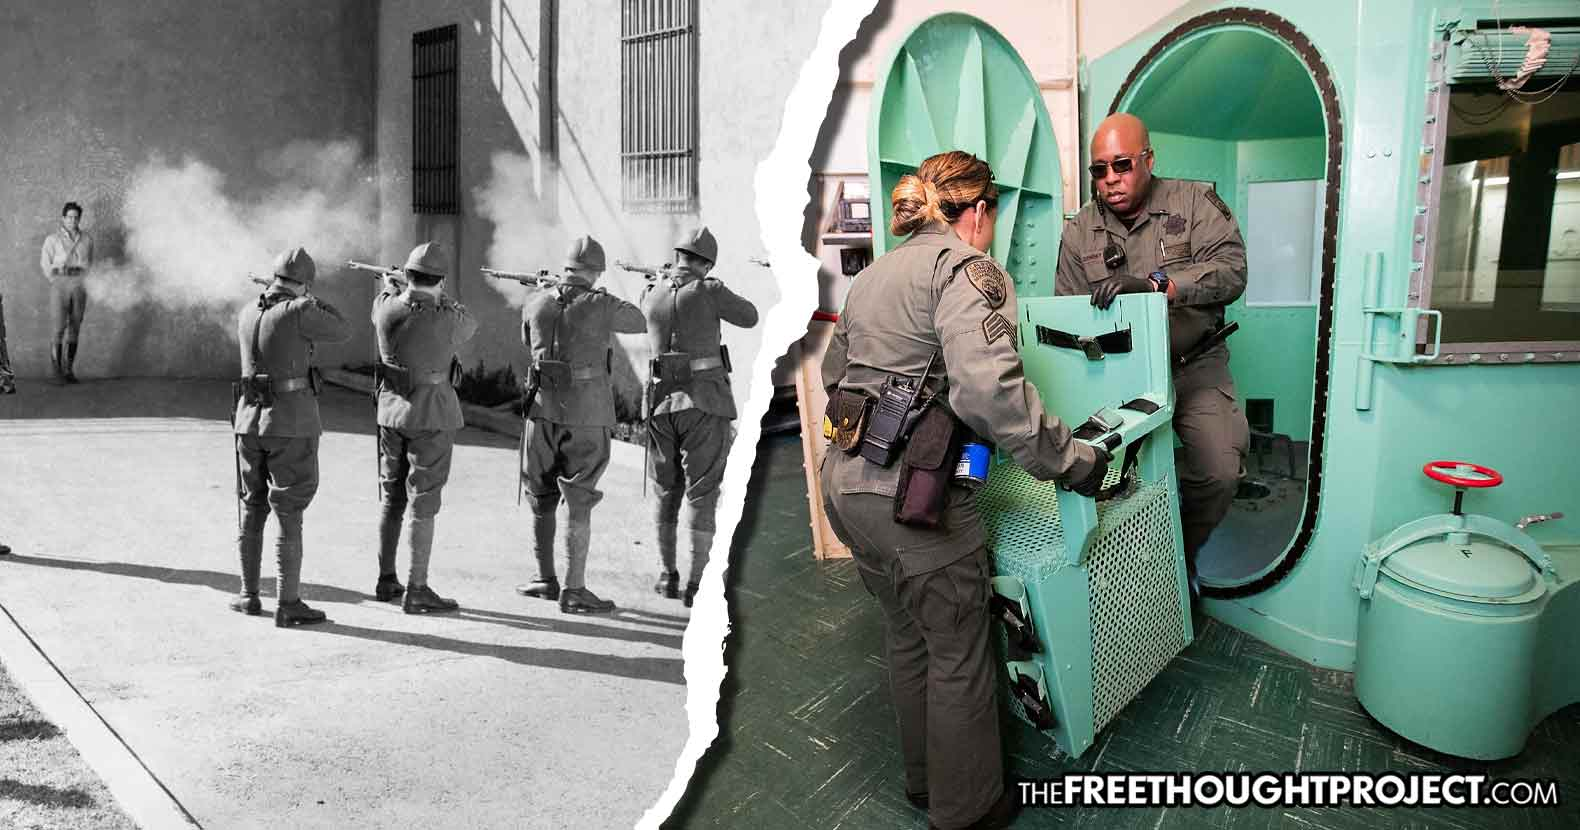 DOJ Quietly Amends Execution Protocols, Clearing the Way for Gas Chambers, Firing Squads